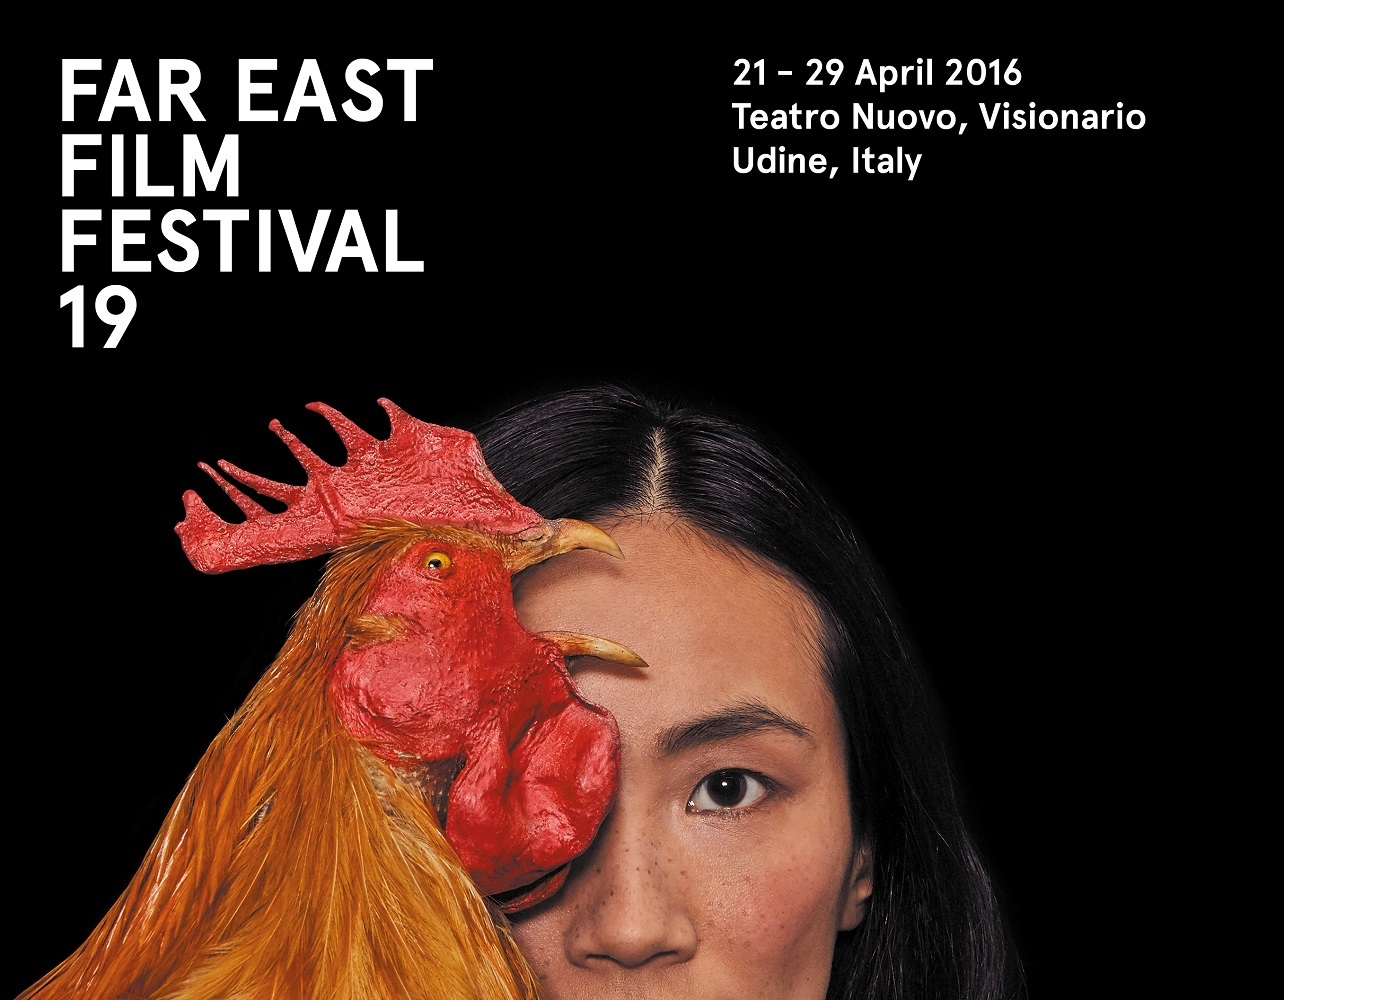 FEFF Far East Film Festival -